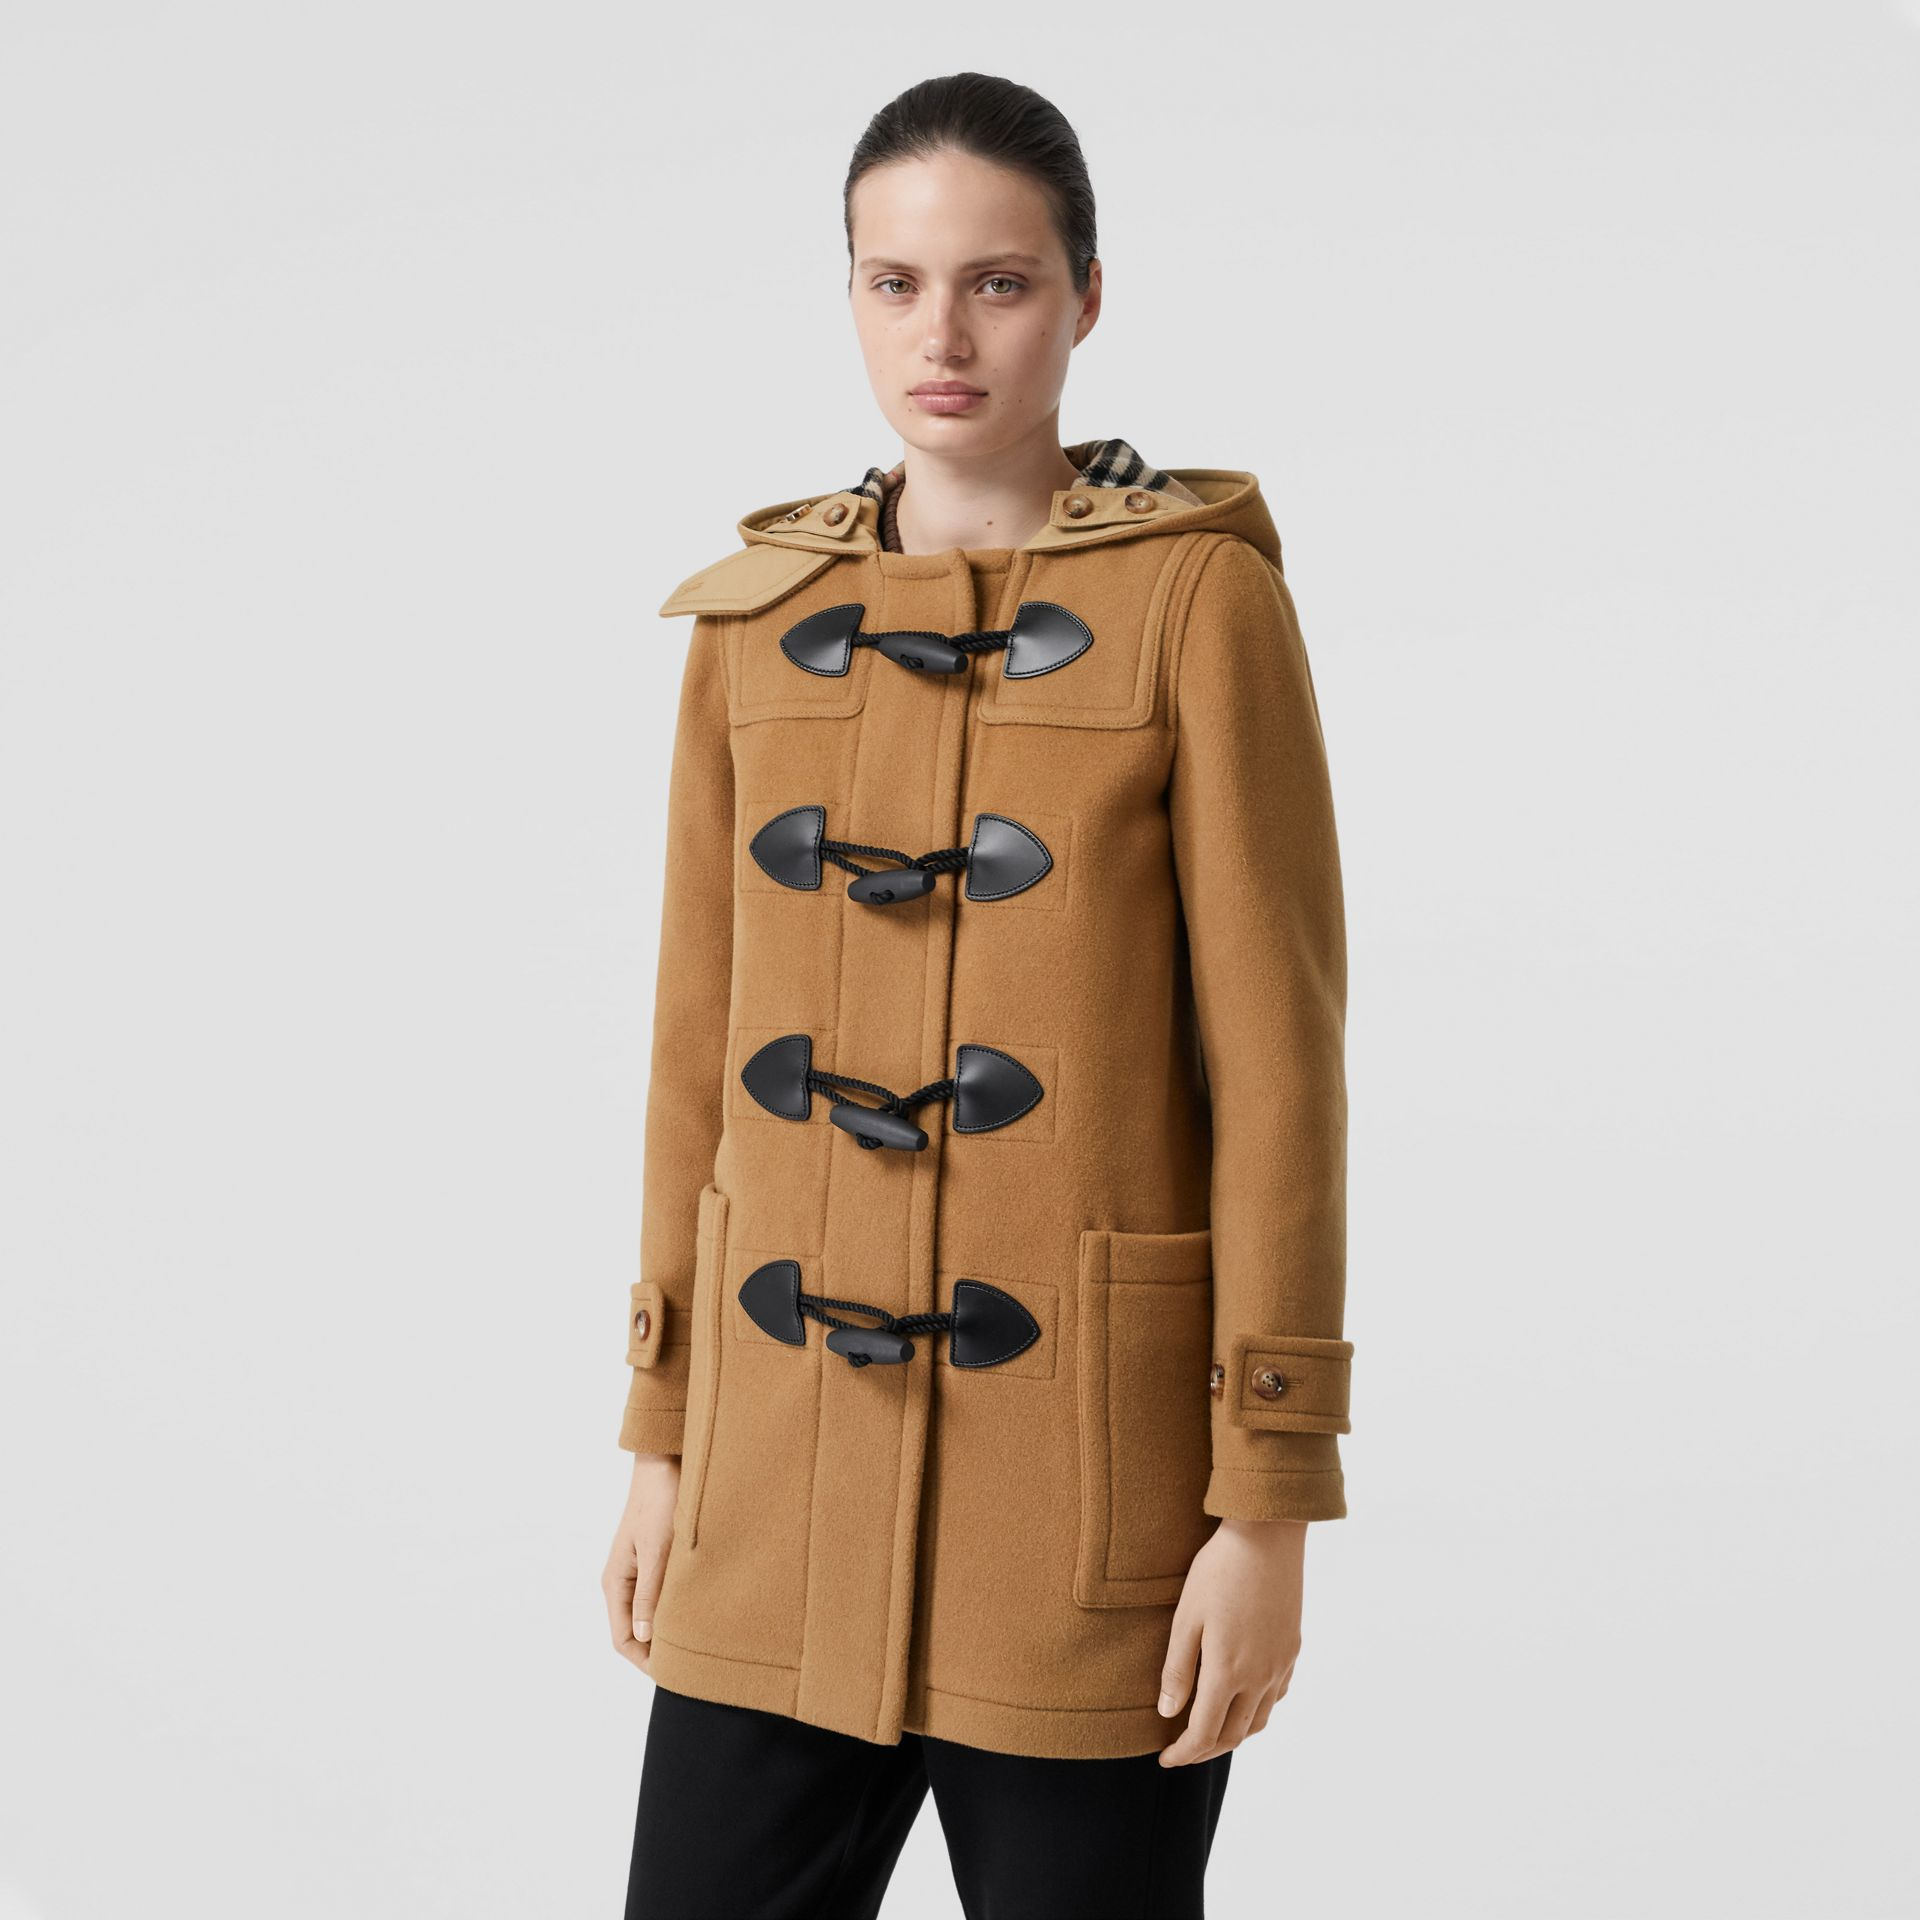 Wool Blend Duffle Coat in Mid Camel - Women | Burberry - gallery image 5